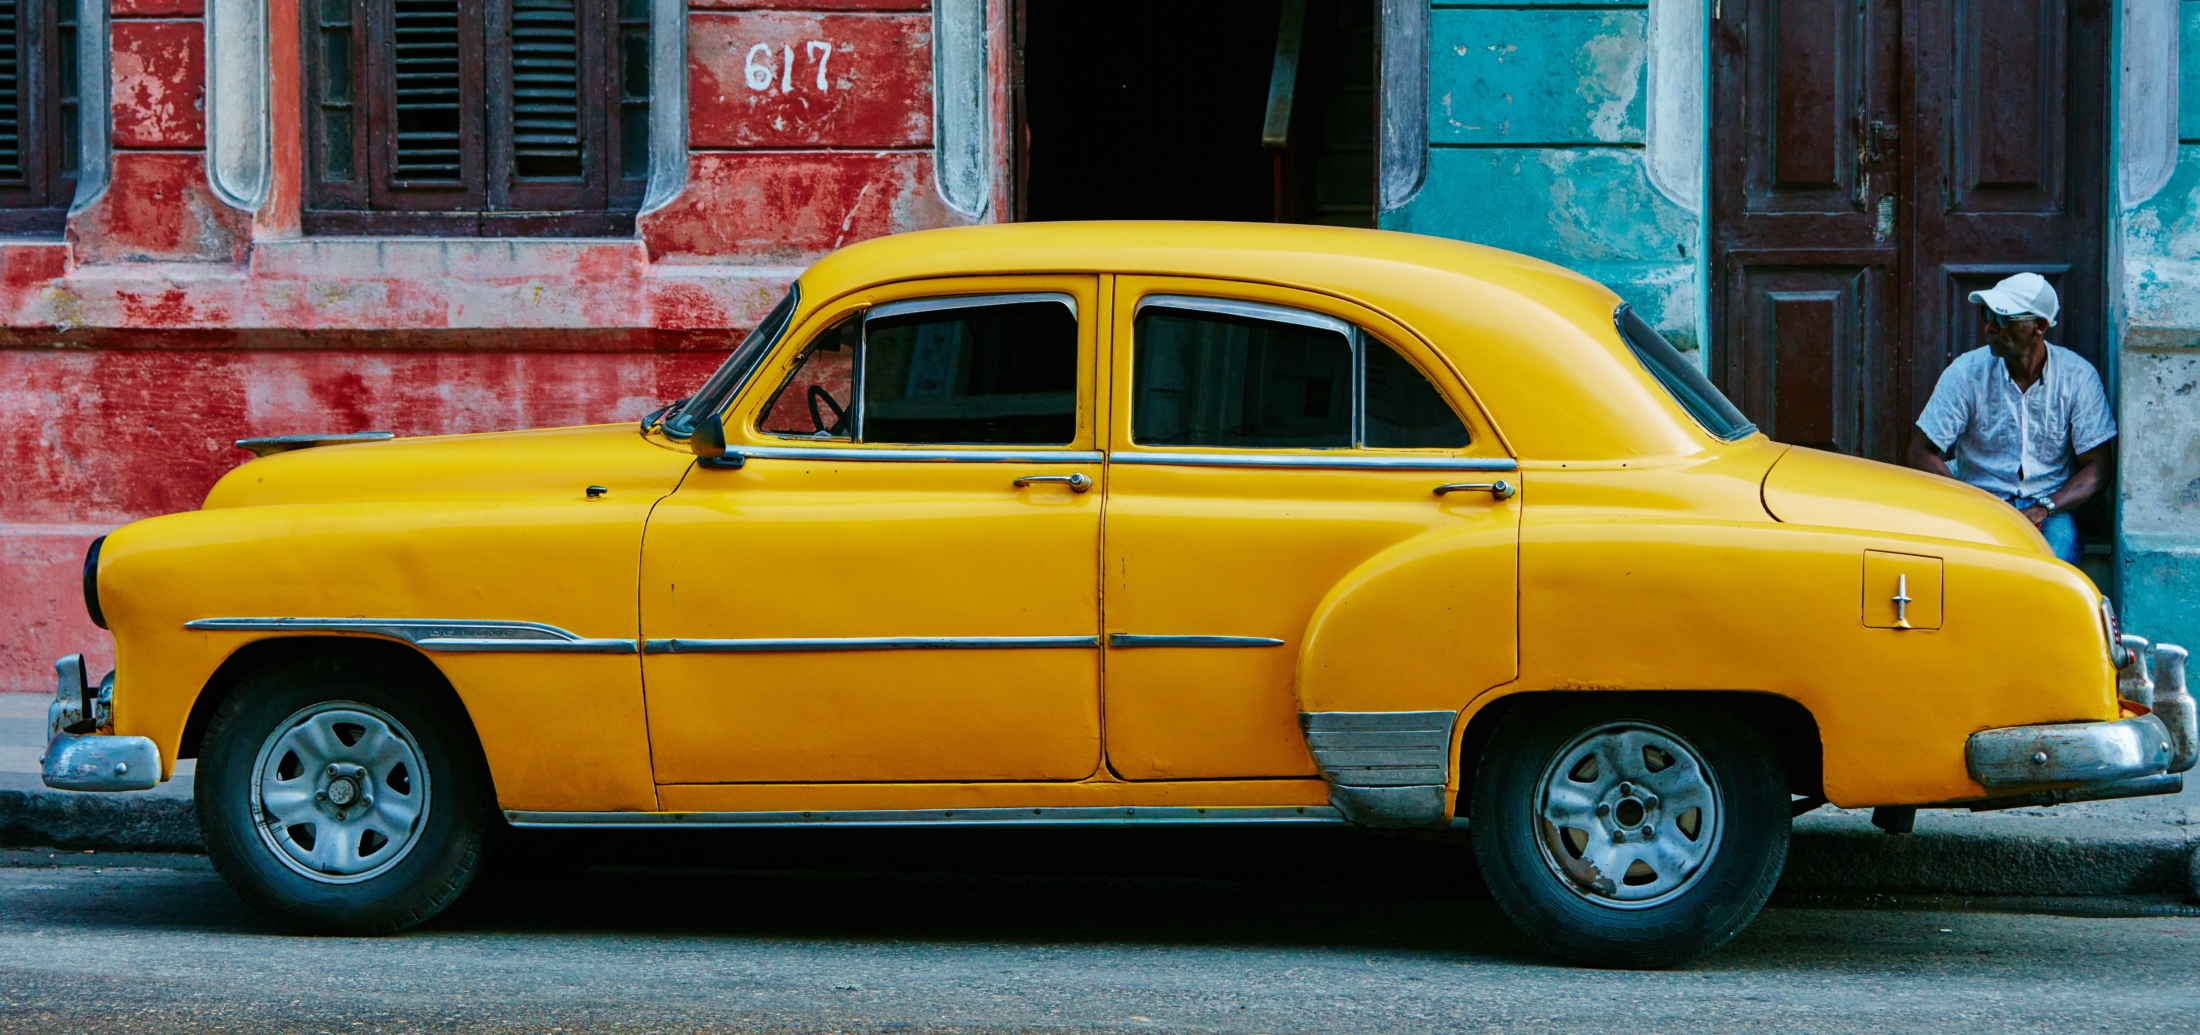 yellow sedan parked near red concrete building